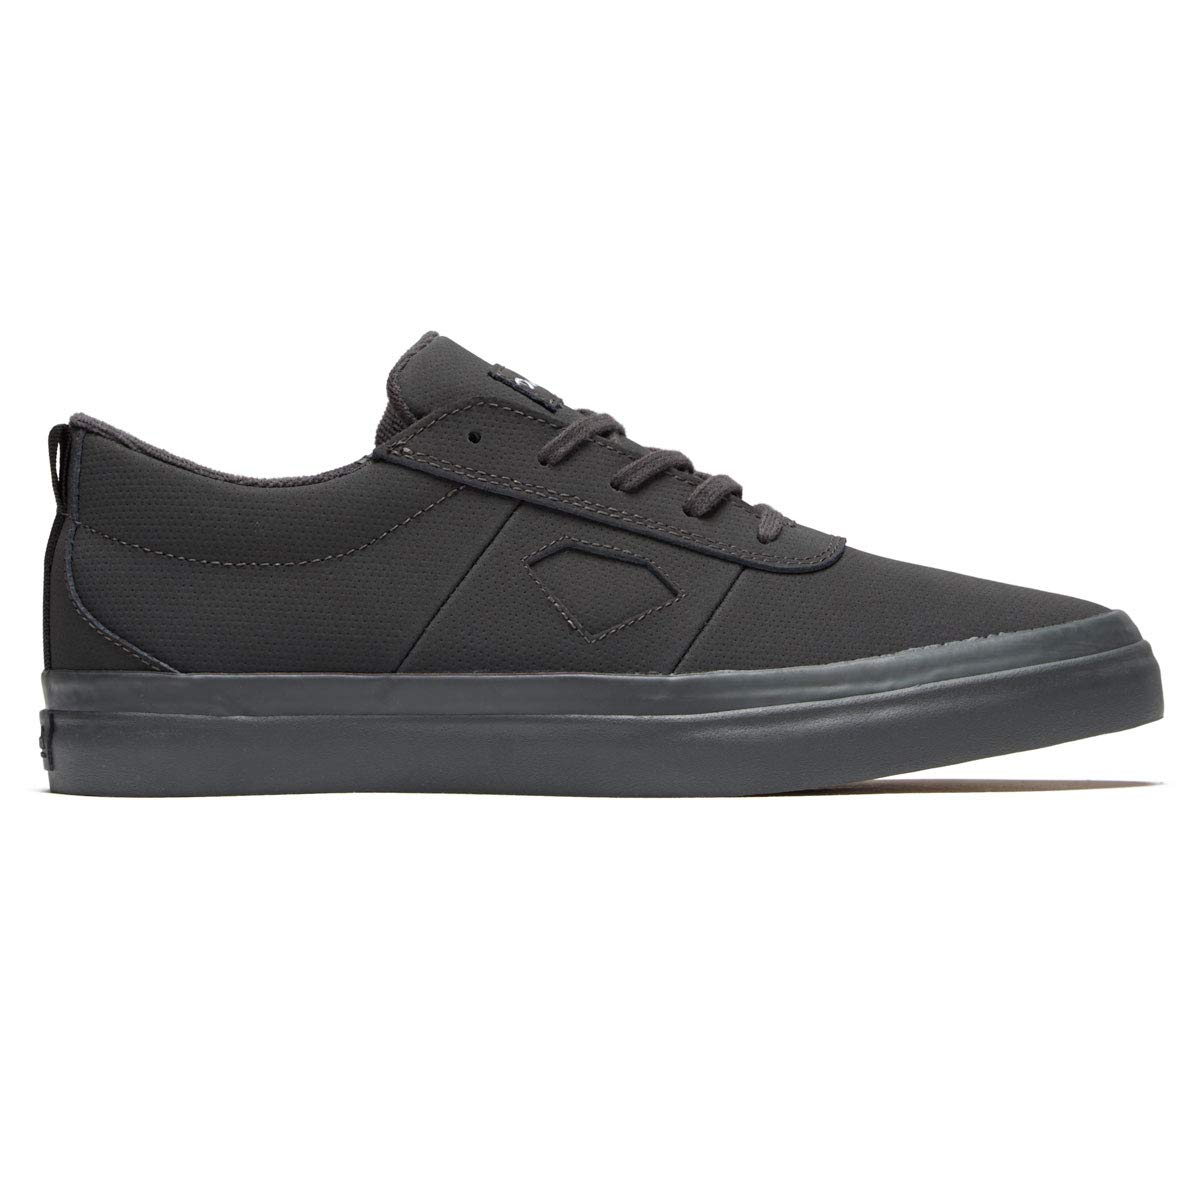 Amazon.com  Diamond Supply Co. Icon Shoes - Black FT Nubuck  Clothing 2d96c8d33bd0